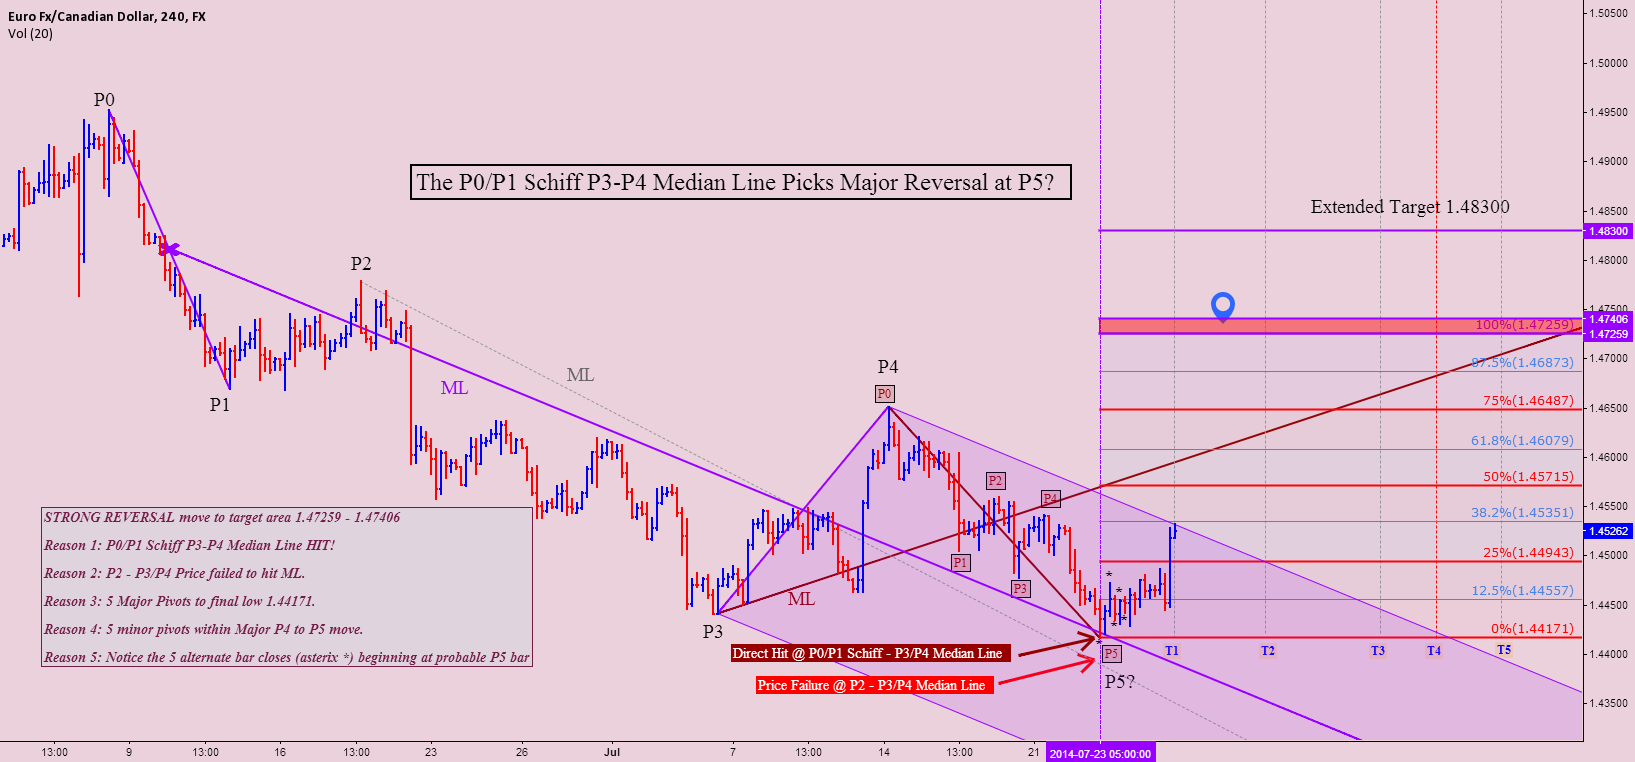 EURCAD The P0/P1 Schiff P3-P4 ML Picks Major Reversal at P5?